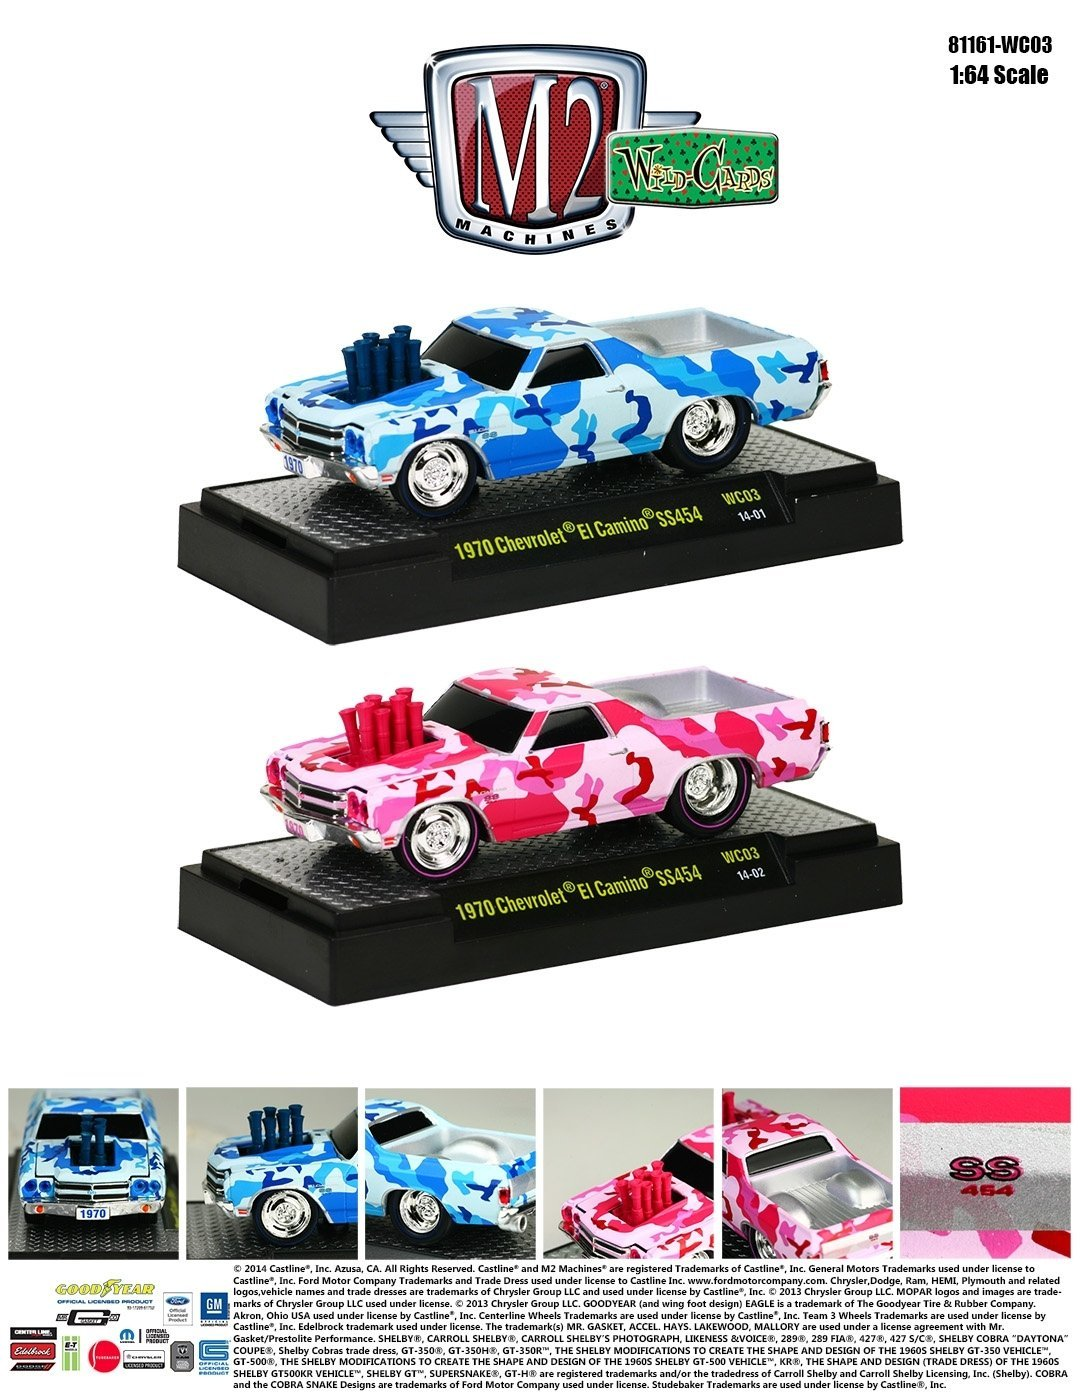 Wild Cards 1970 Chevrolet El Camino SS 454 Camouflage Red and Blue 2pc Car Set WITH CASES 1/64 by M2 Machines 82161-WC03